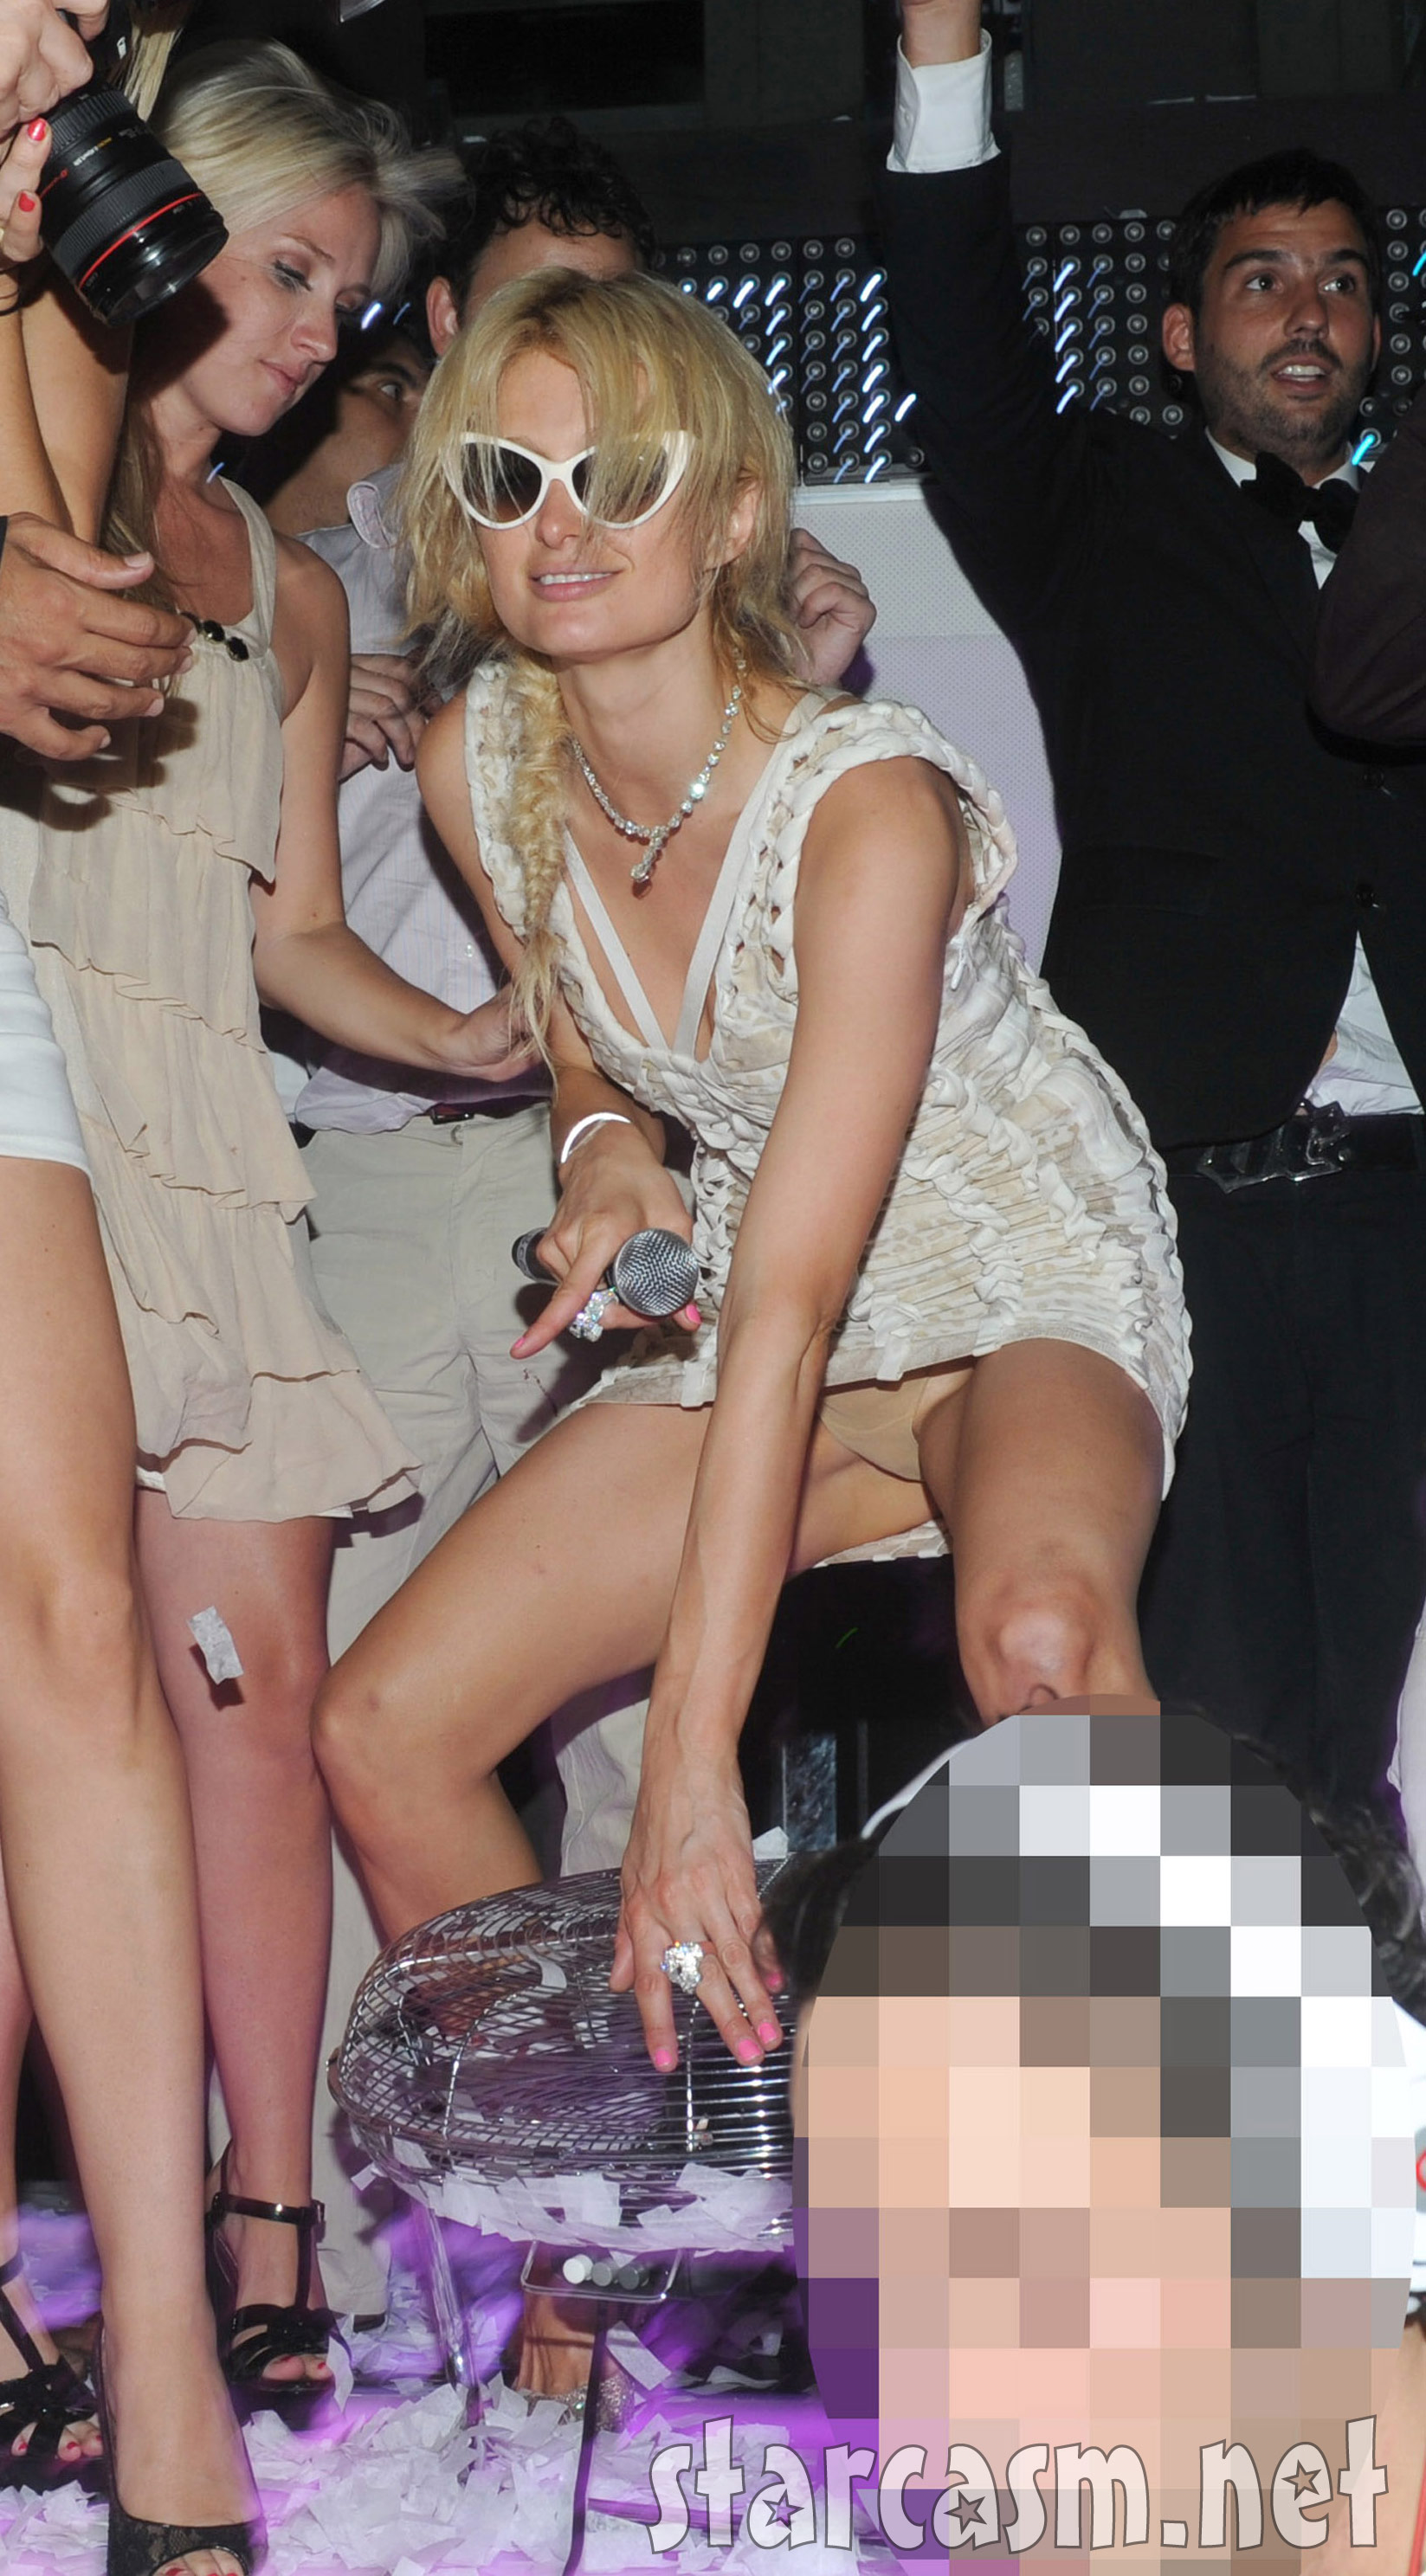 Paris Hilton drunk and flashing her panties at the VIP Room in Saint